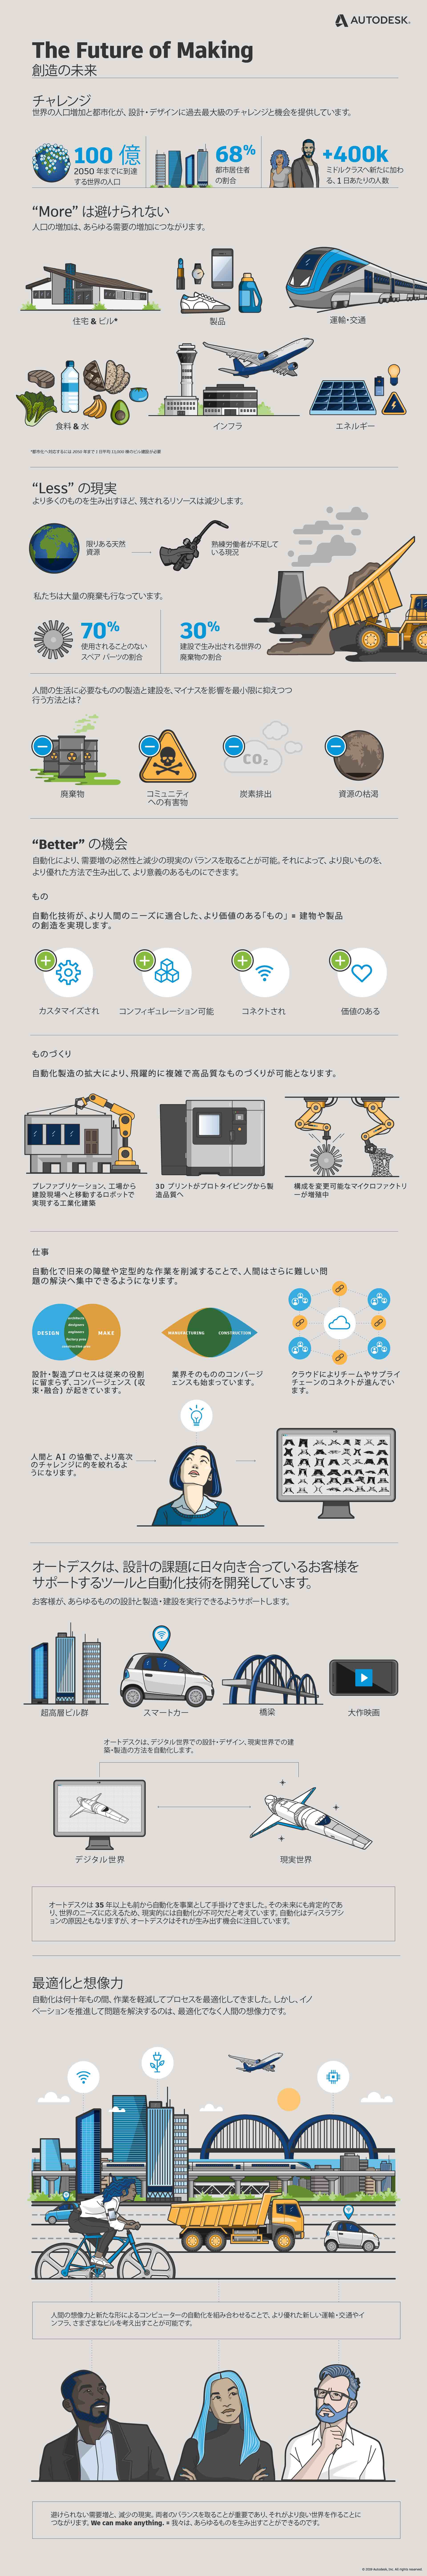 infographic about the future of making